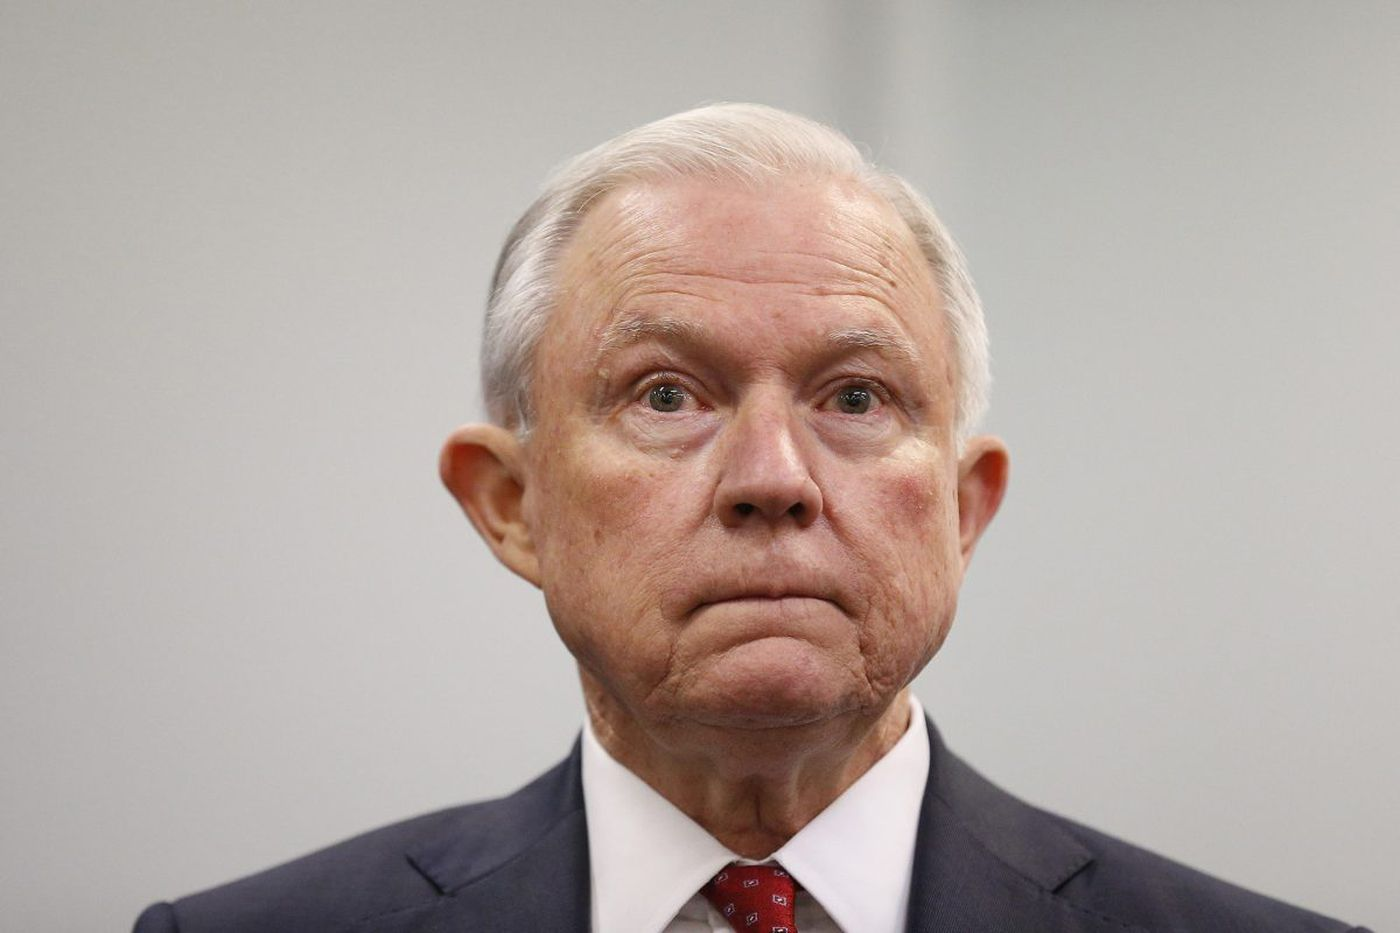 Embattled Sessions announces new restrictions on funding sanctuary cities